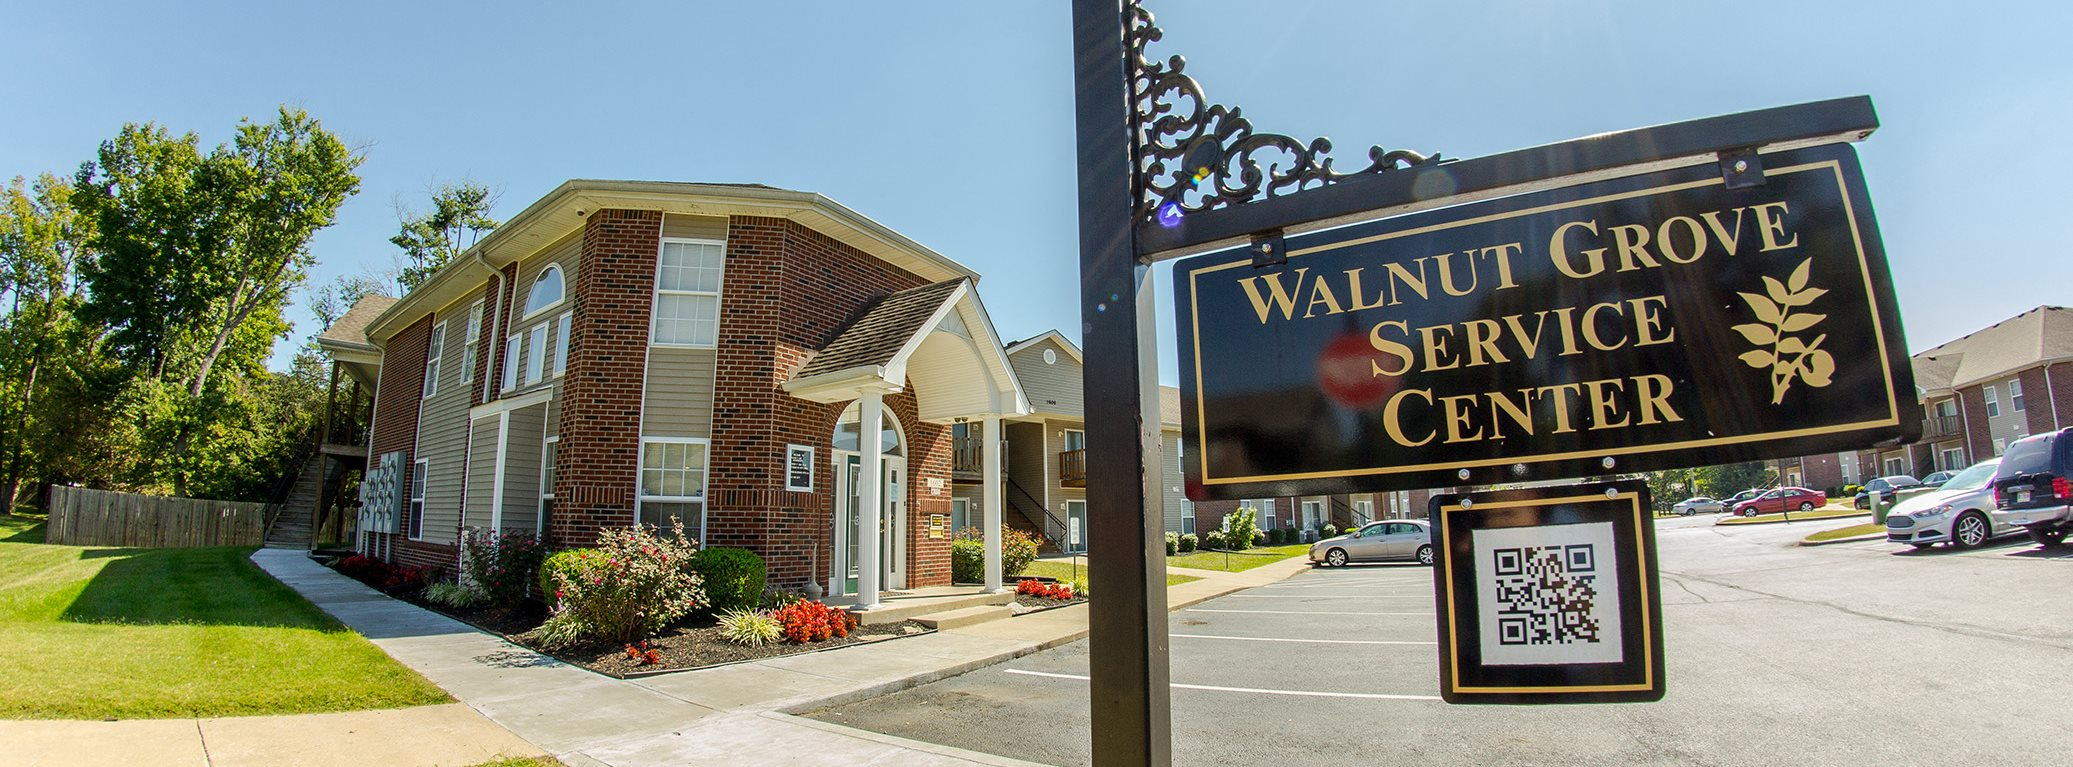 Walnut grove apartments apartments in louisville ky for 1 bedroom apartments louisville ky 40216